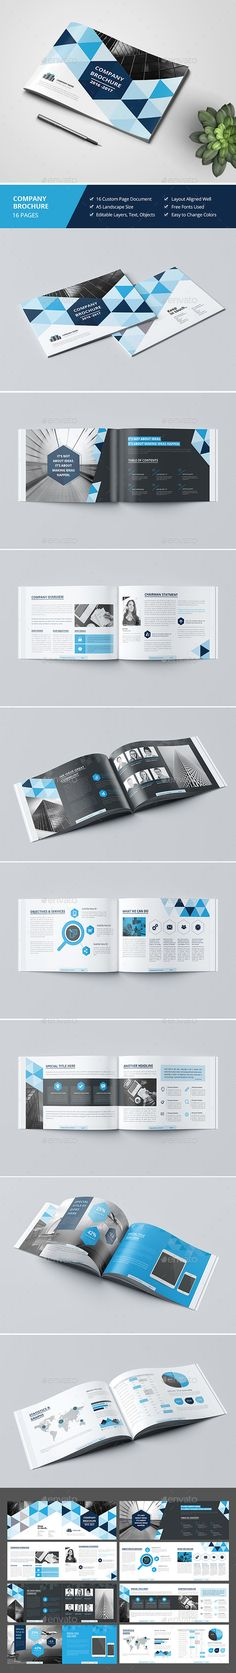 Page Brochure Pinterest Brochure Template Brochures And Template - 8 page brochure template